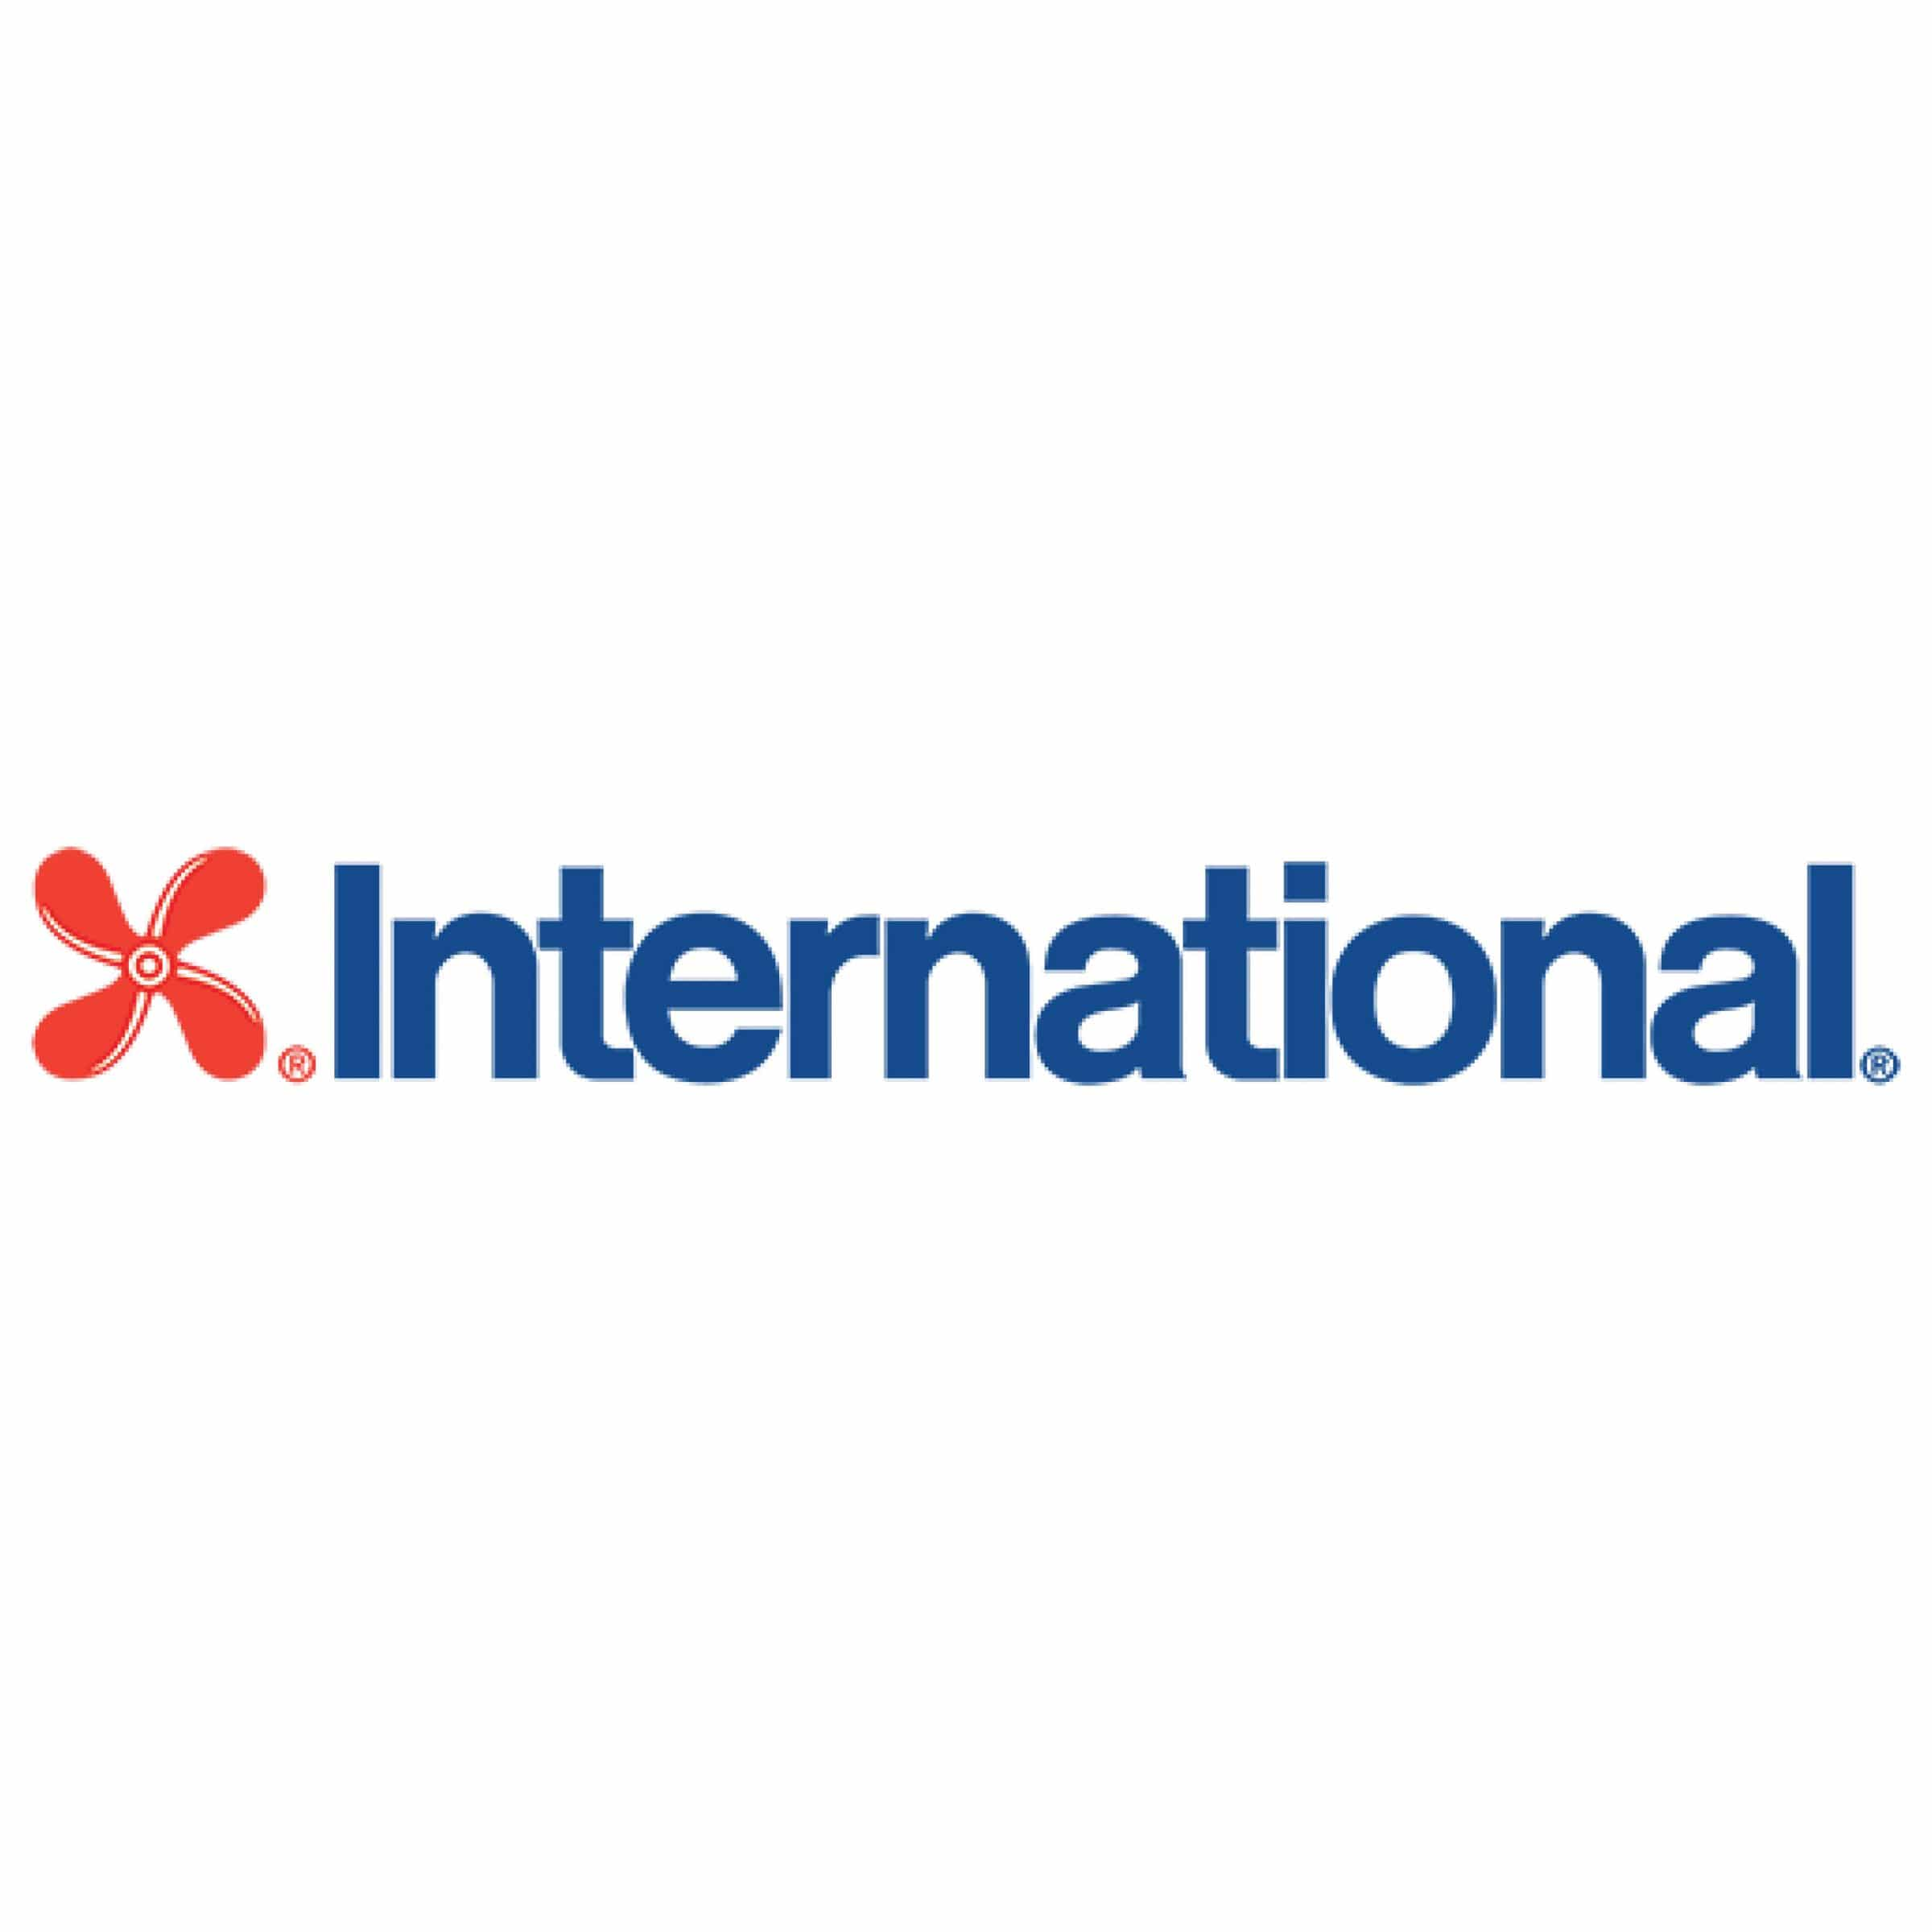 swan river sailing supporter international paints logo